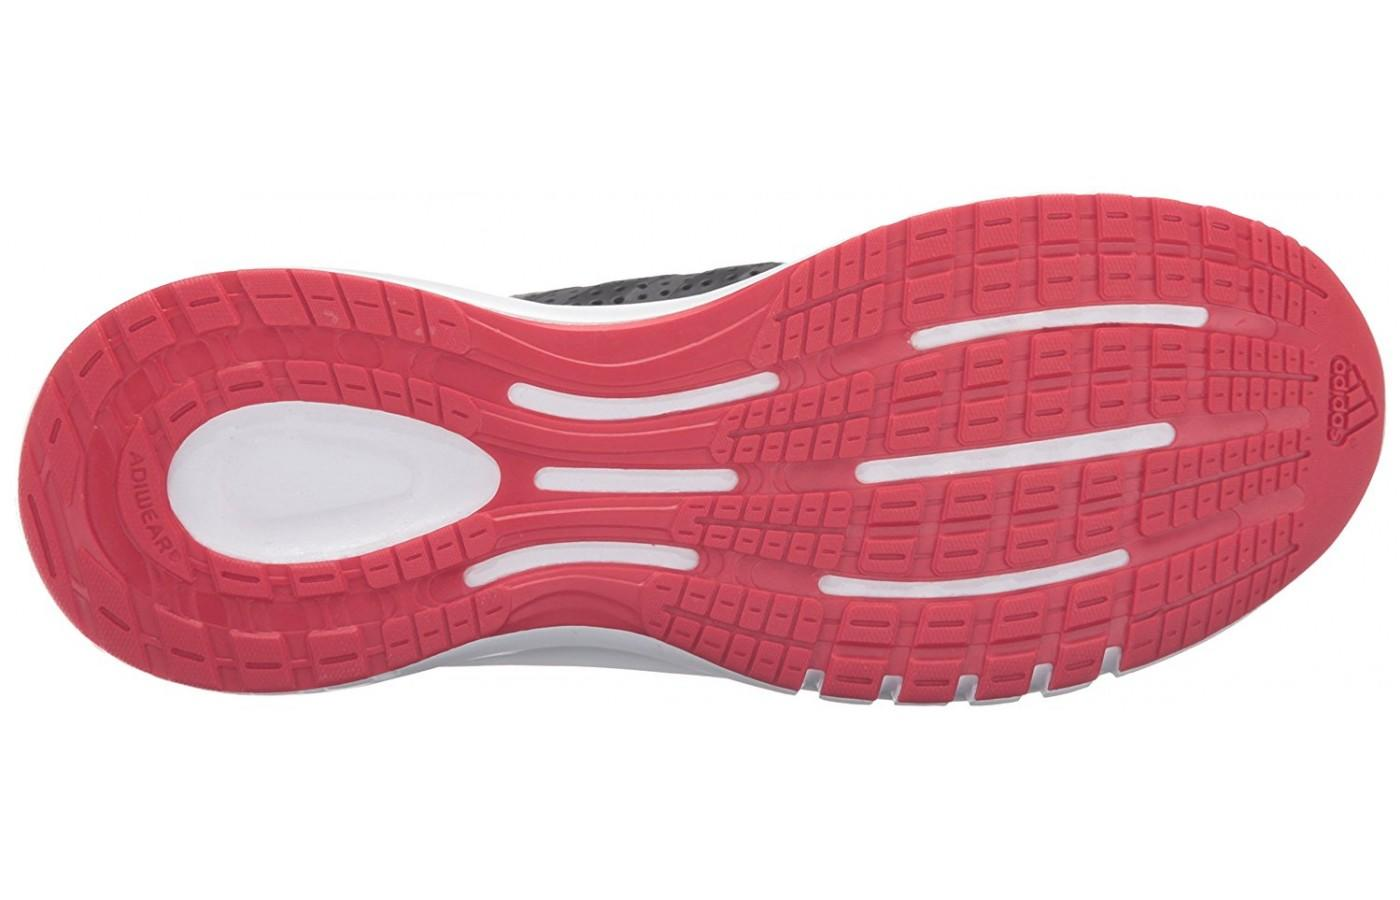 The durable AdiWear outsole